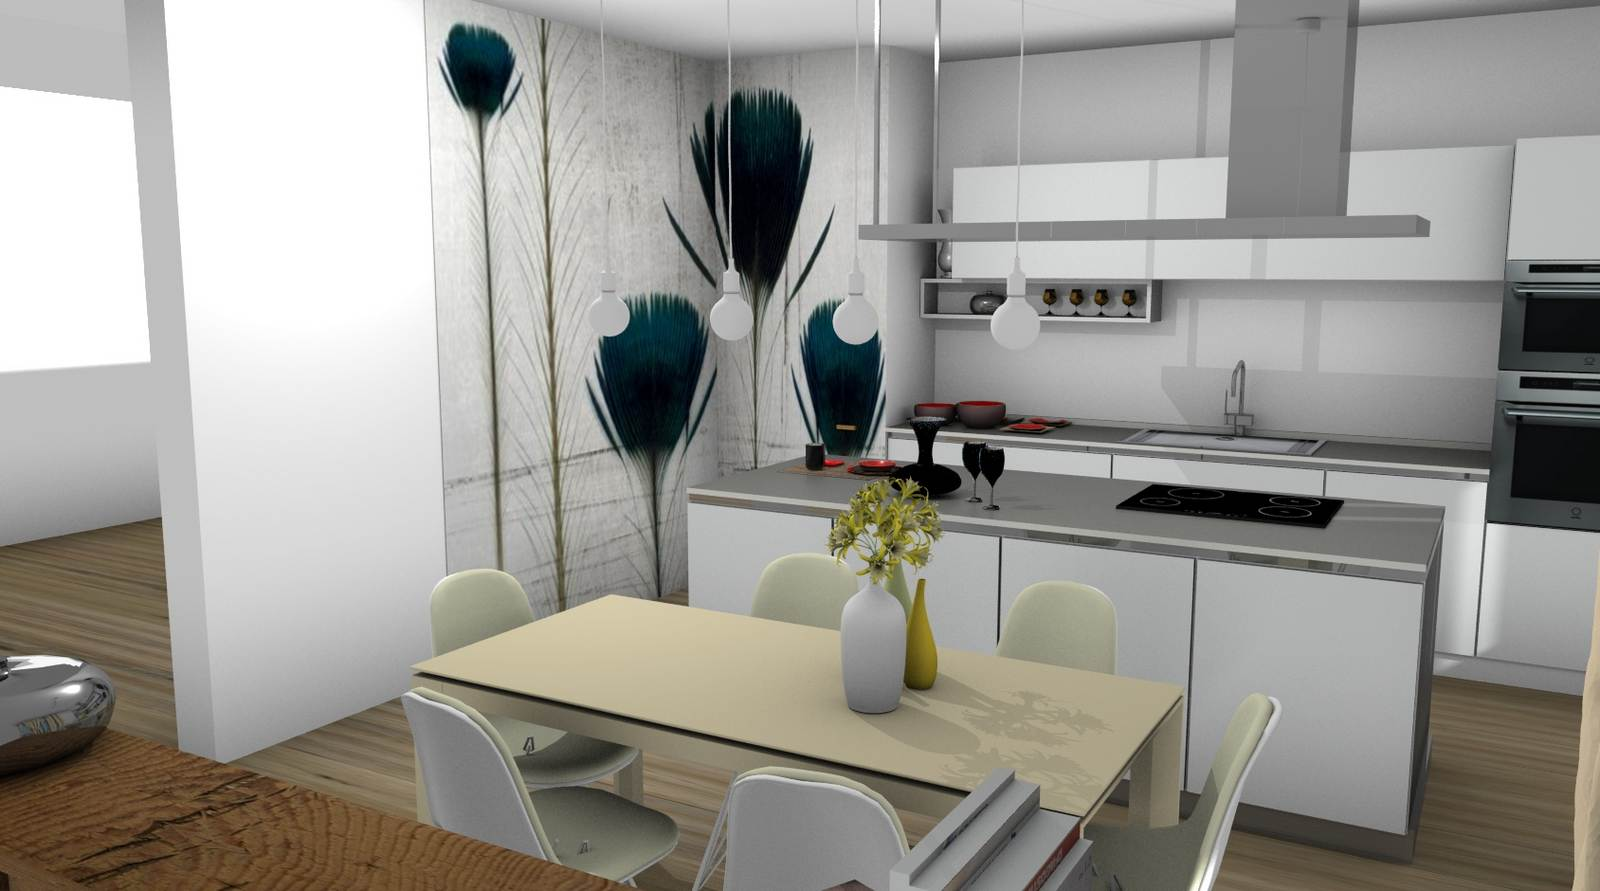 cucina One Ernestomeda rendering 6